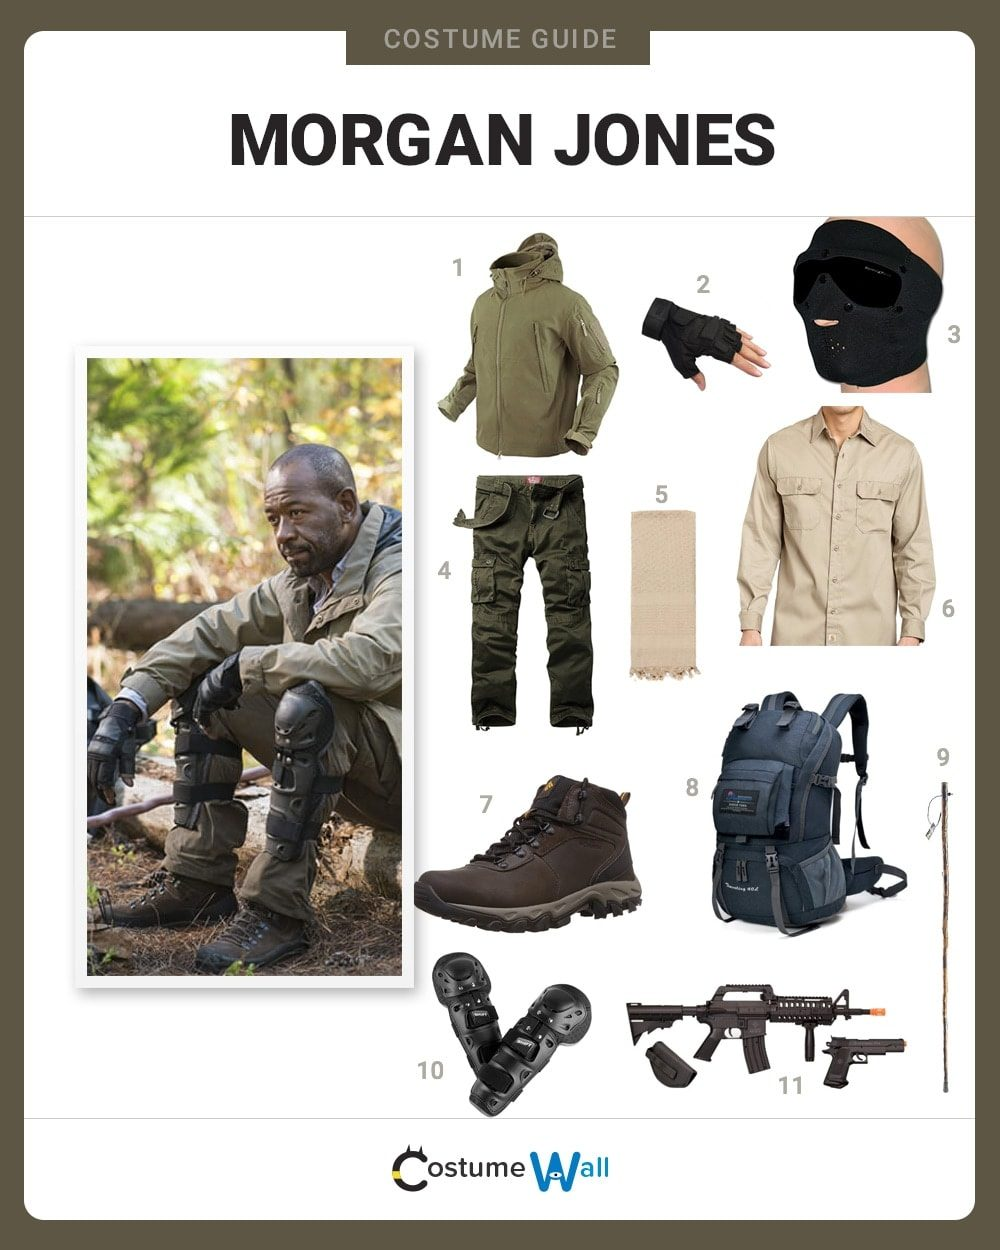 Morgan Jones Costume Guide